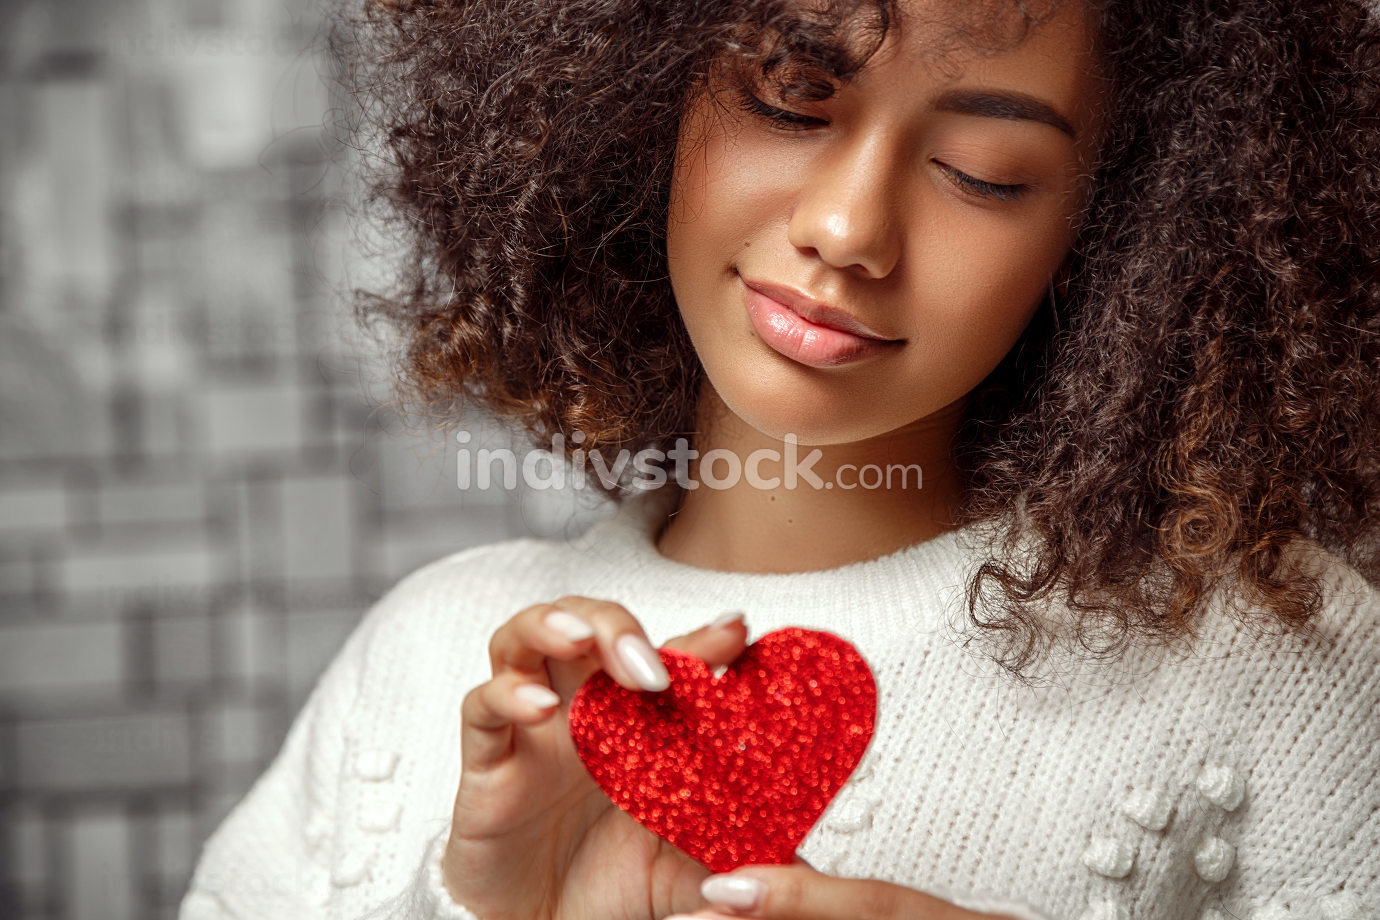 close-up portrait of a young curly-haired African American girl in a white sweater holding a paper heart . face focus, shallow depth of focus